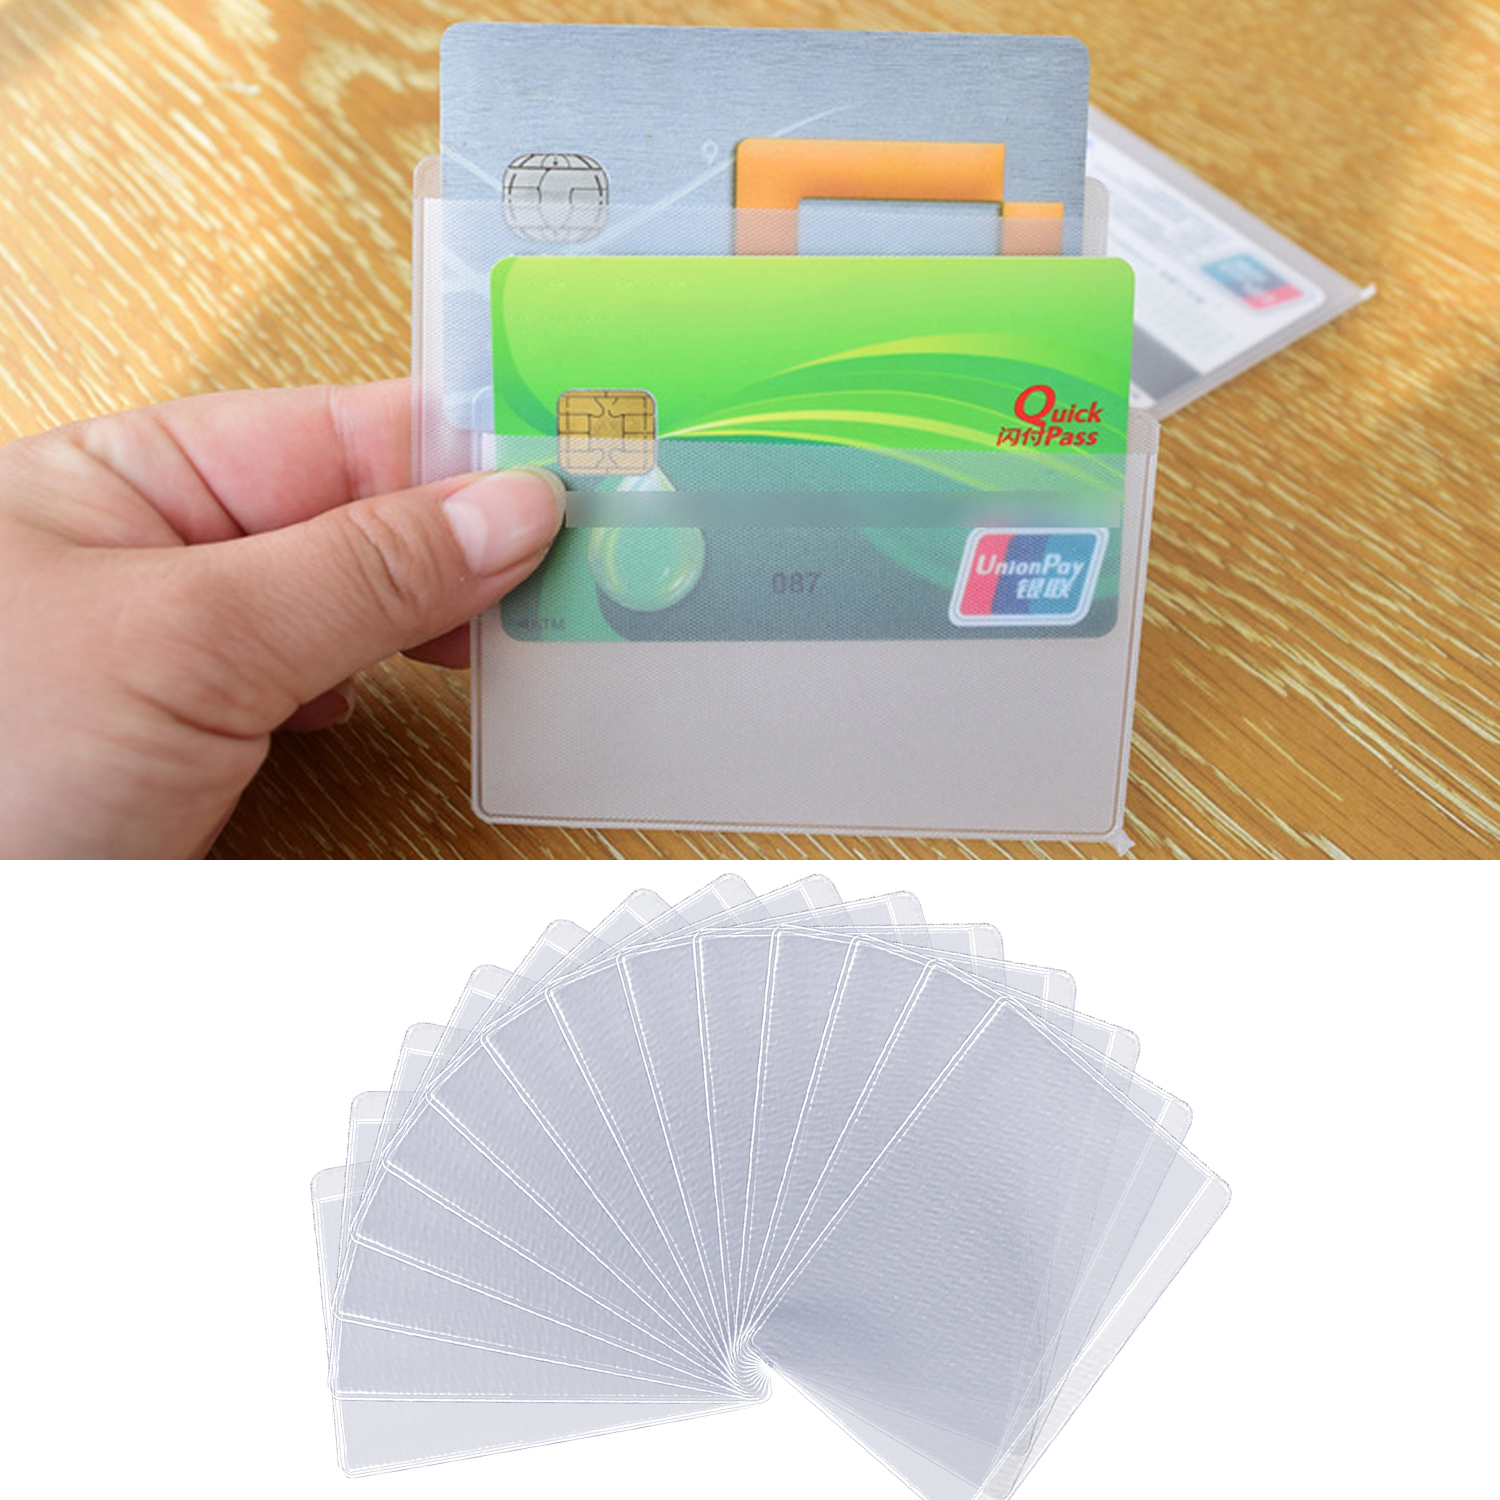 50PCS Matt Transparent RFID Blocking Anti Theft Credit Card Sleeve Holder Protector For Travel Business Trip Outdoor Use 9x6.5cm